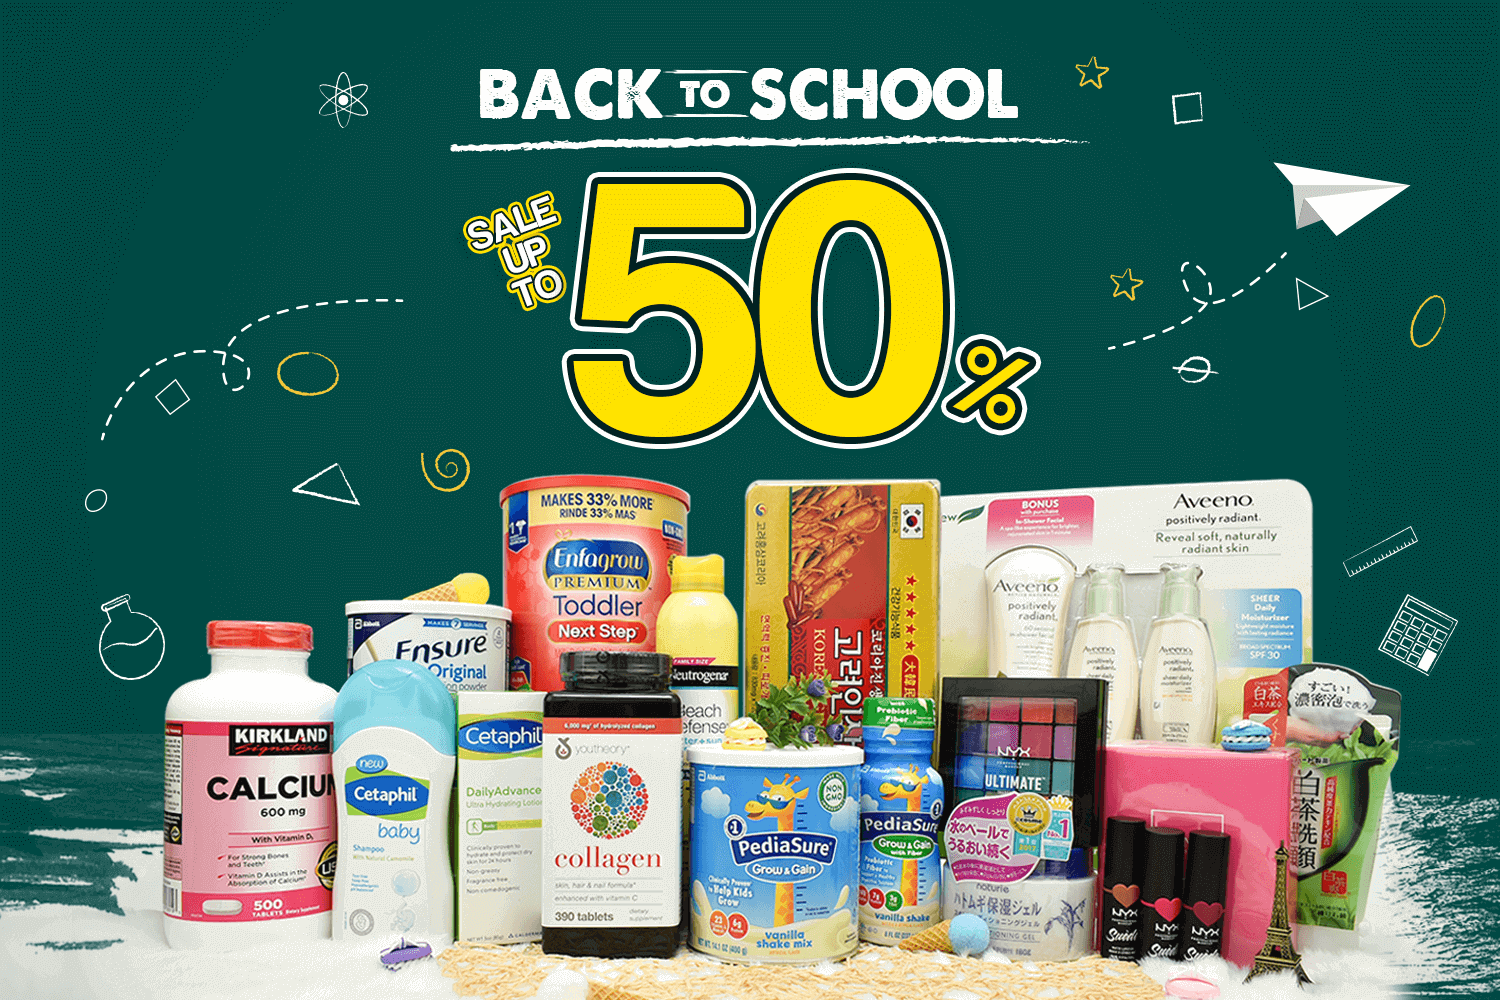 [CTKM] BACK TO SCHOOL - SALE UP 50%